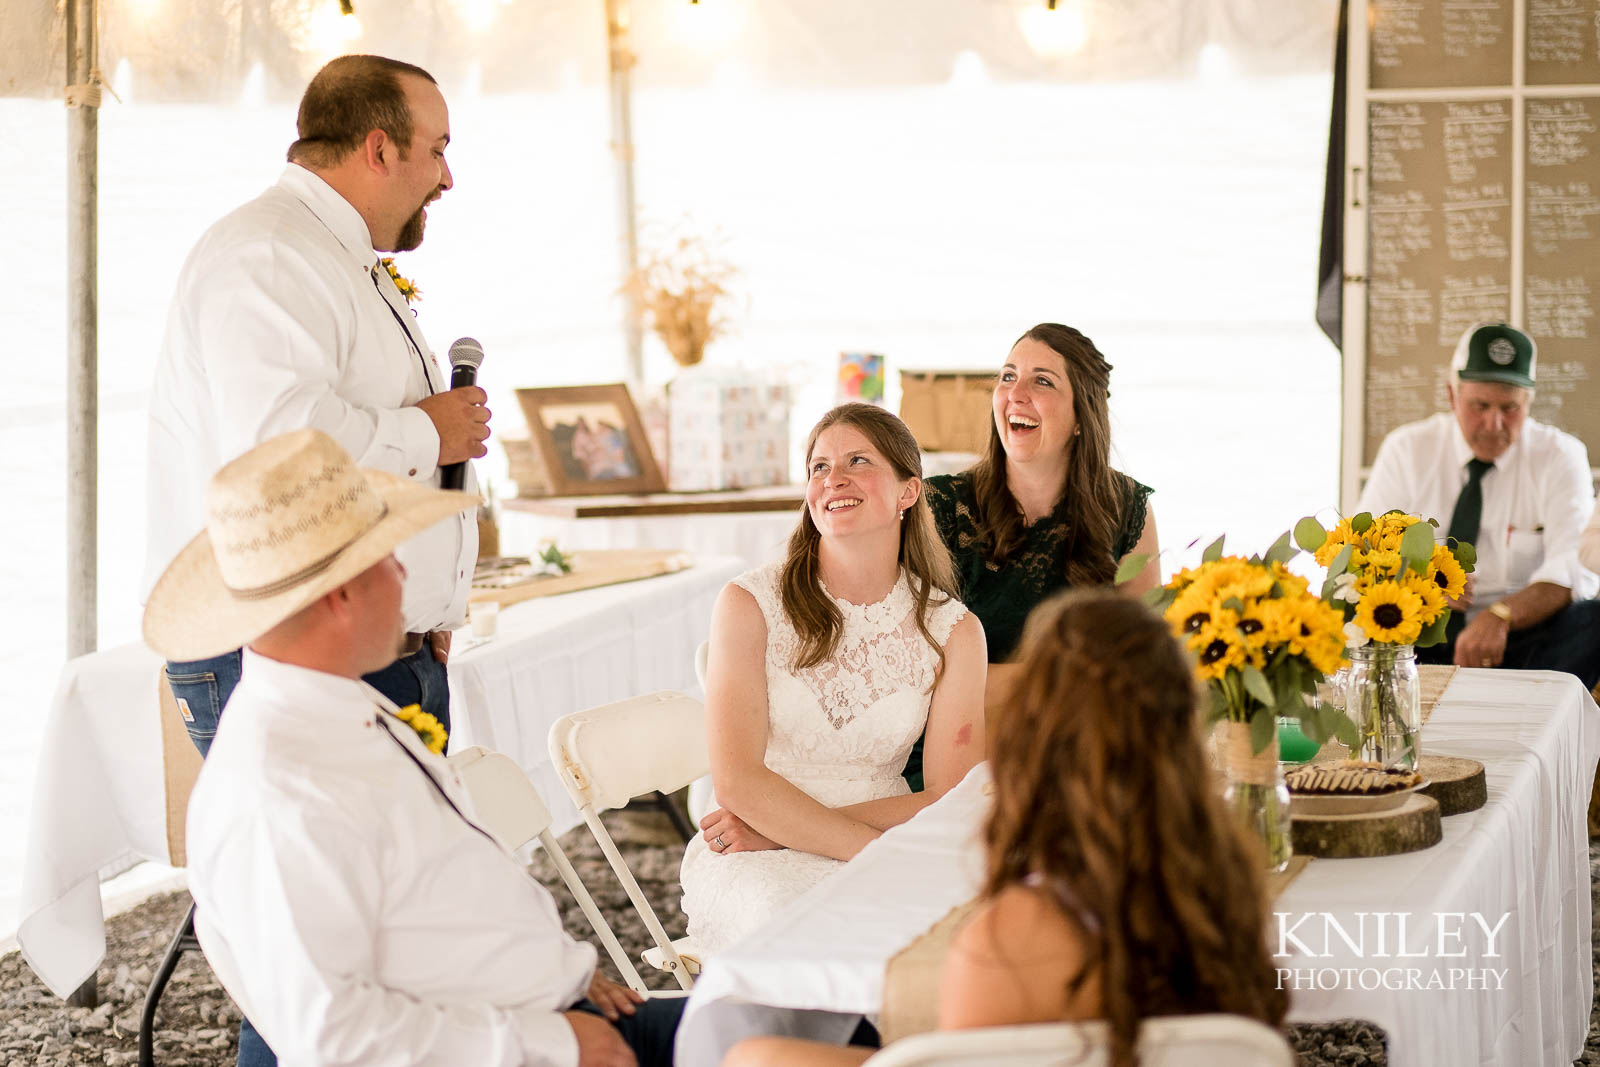 56-Western-New-York-farm-wedding-Kniley-Photography.jpg